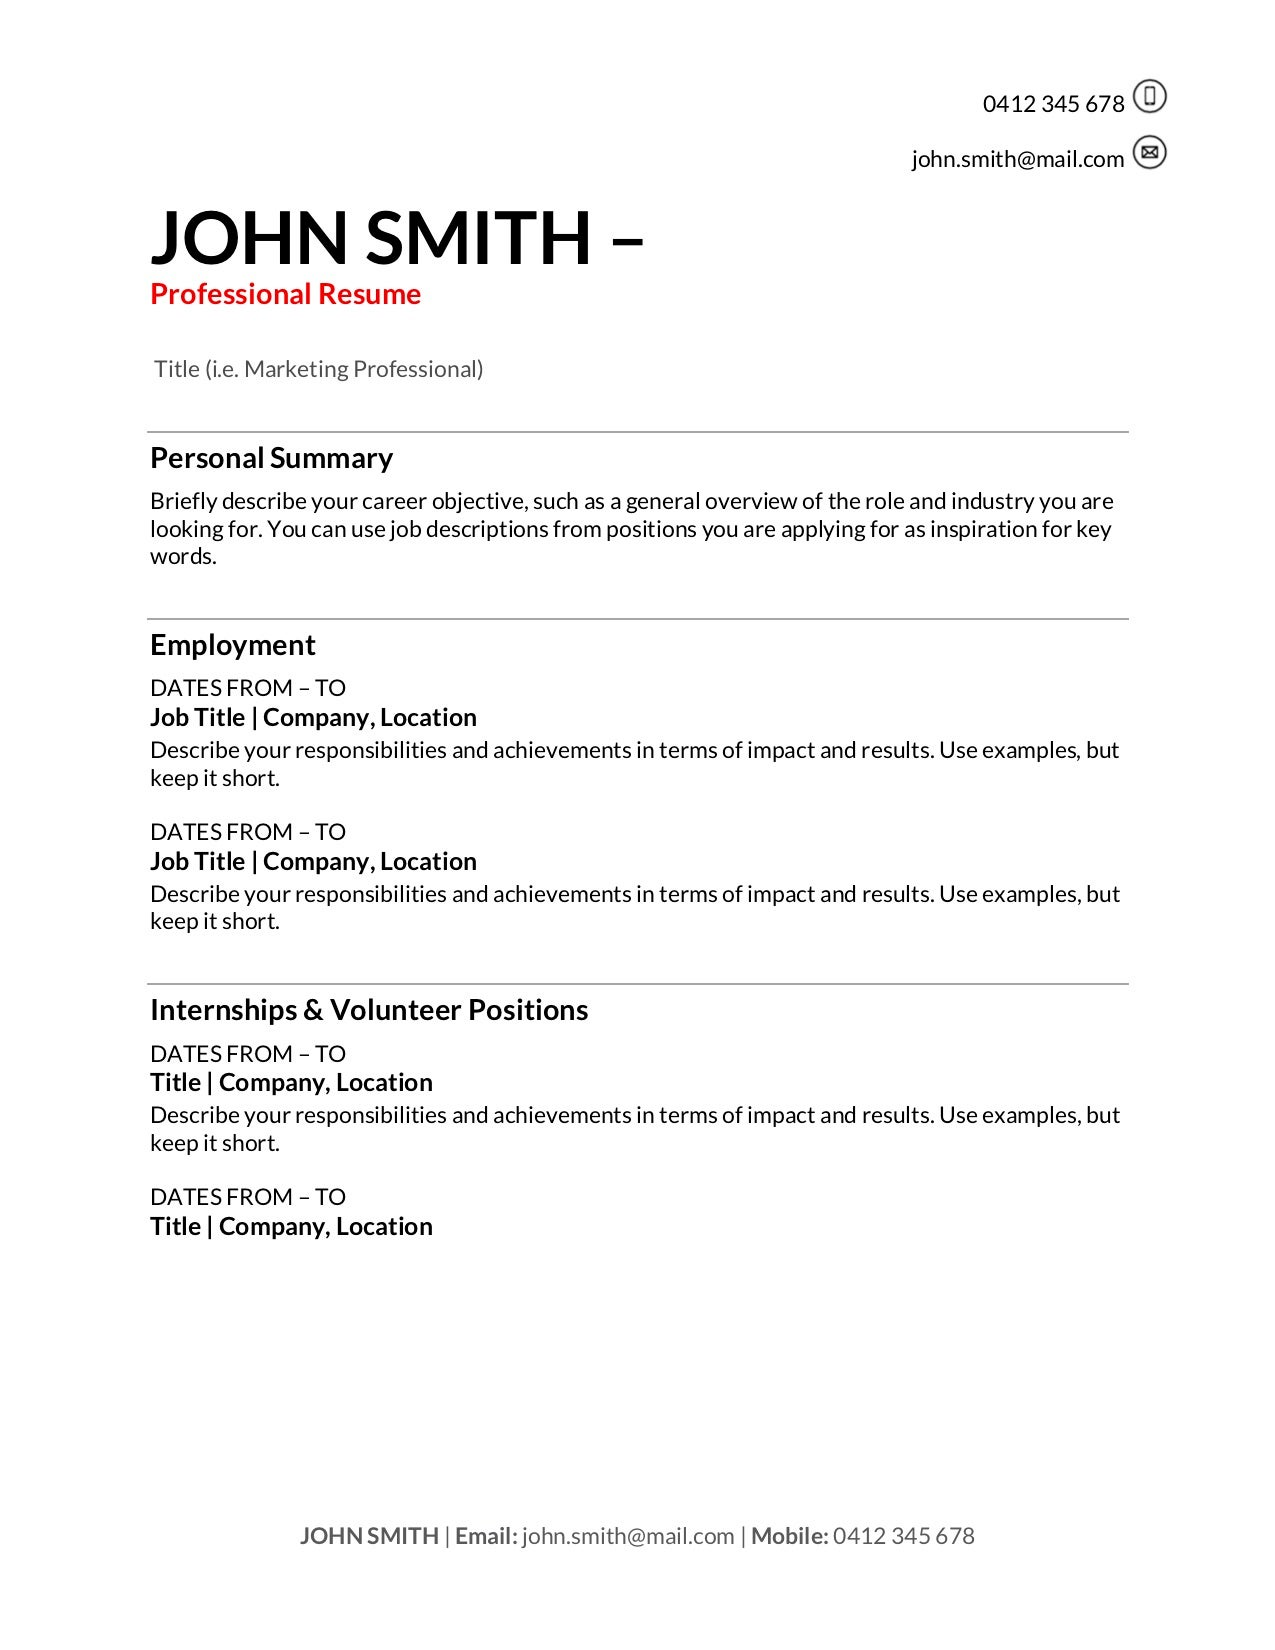 free resume templates to write in training au example of good for first job opposite yes Resume Good First Resume Examples